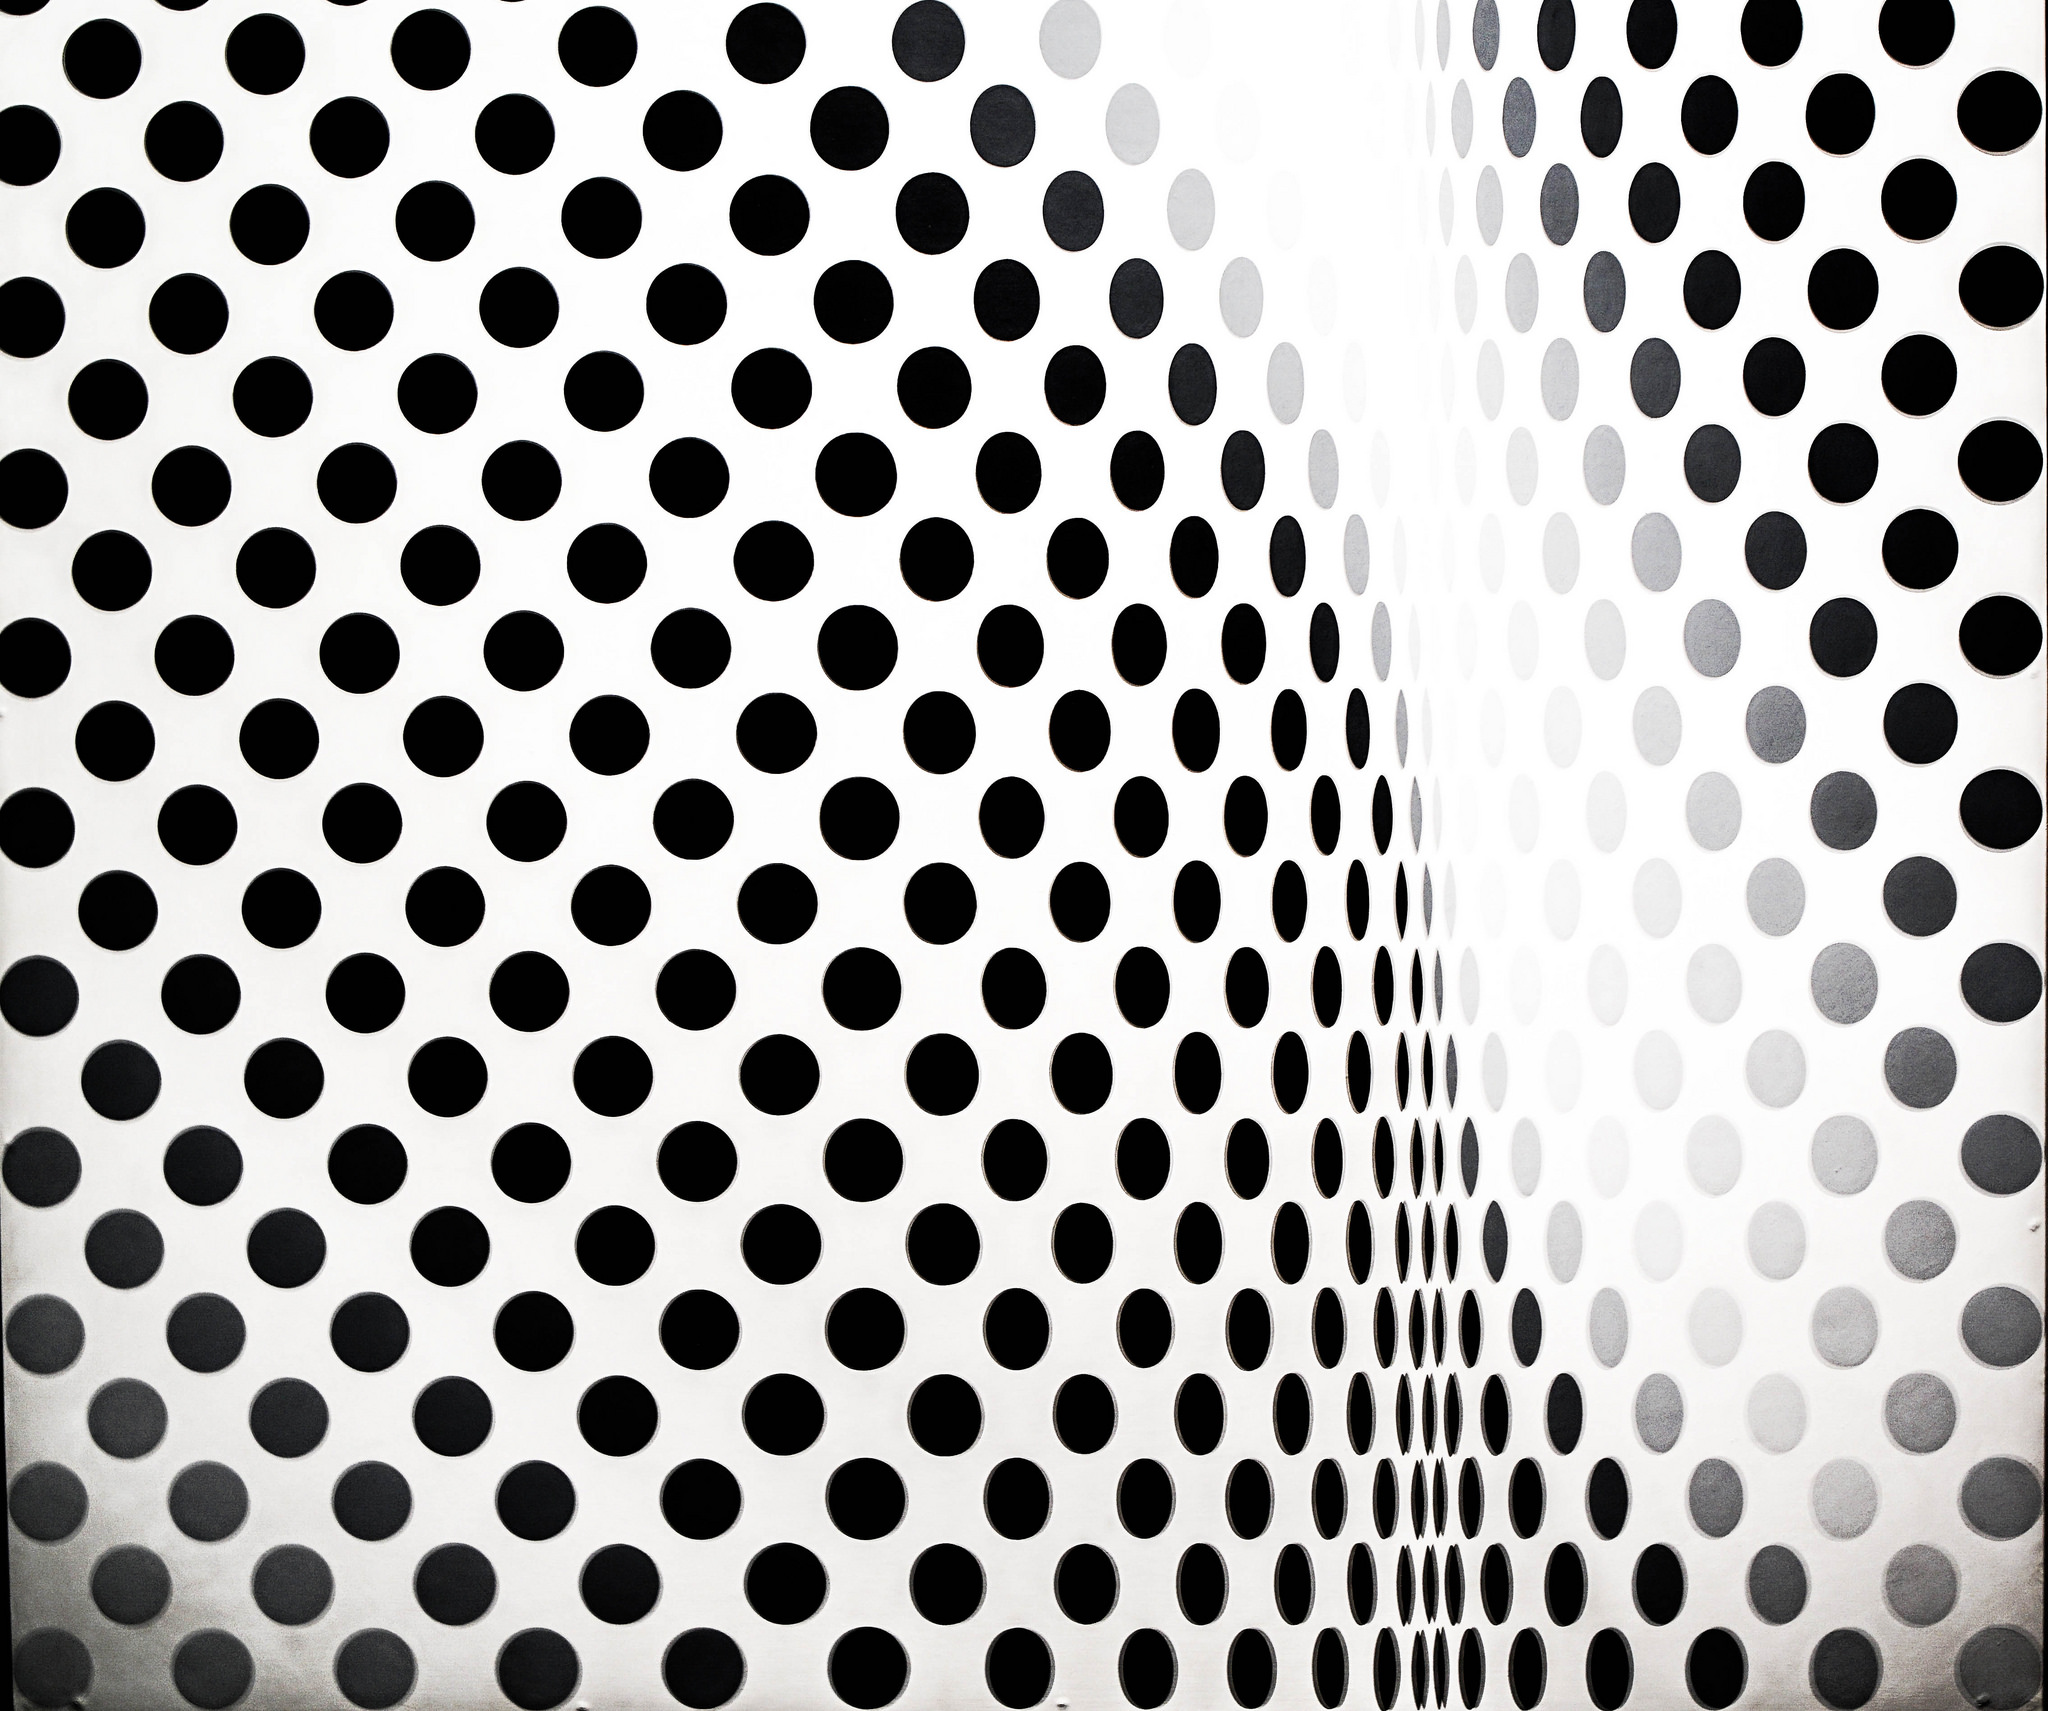 15 things you may not have known about bridget riley